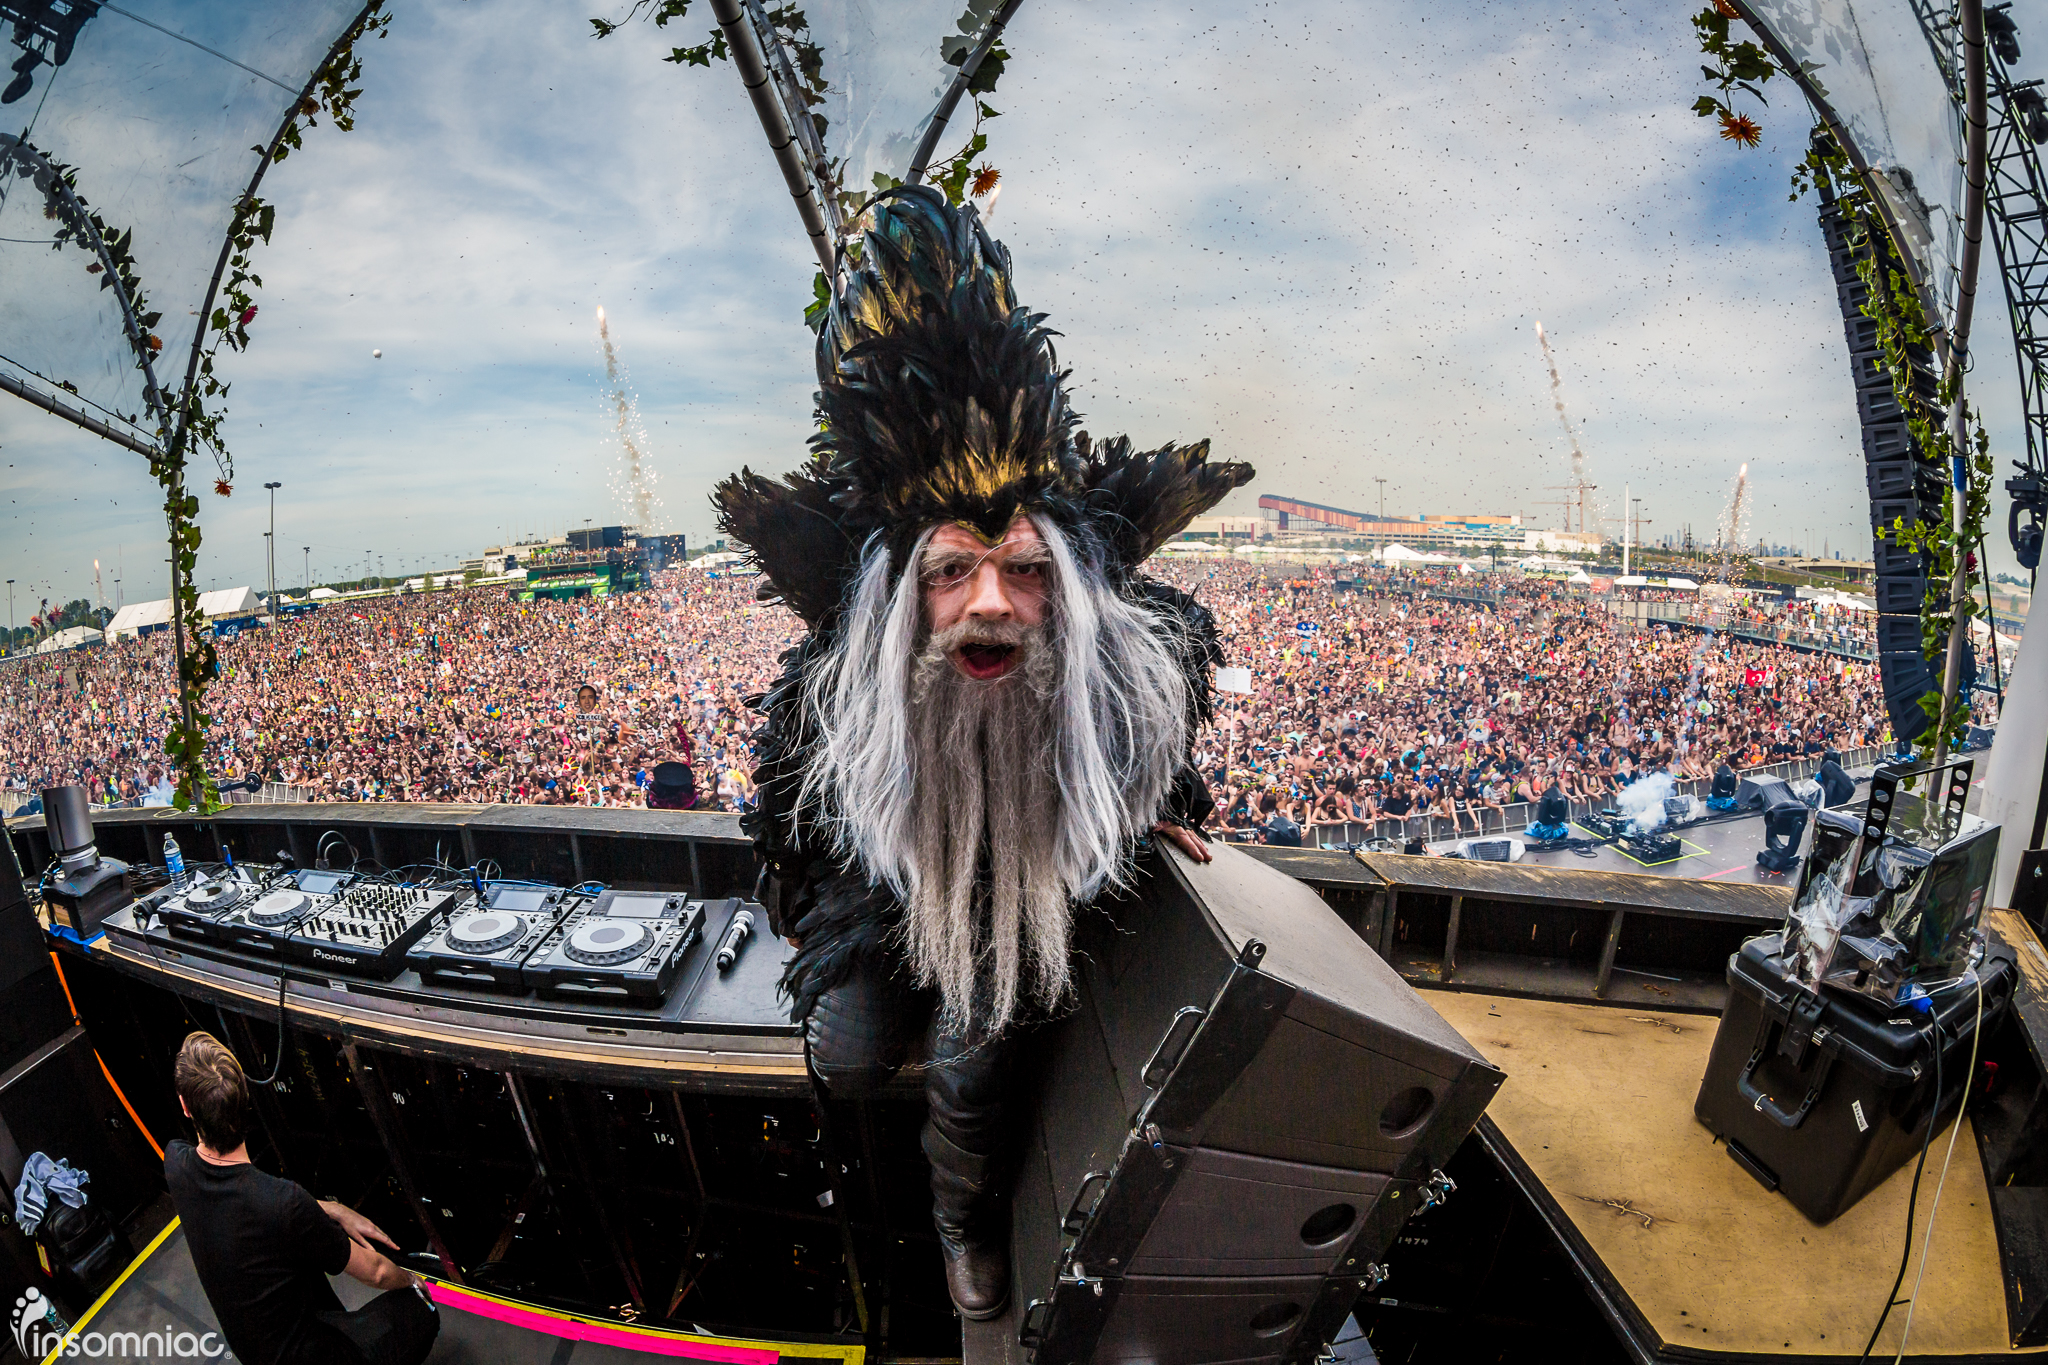 EDCNY_2015_iWally_aLIVECoverage-15.jpg